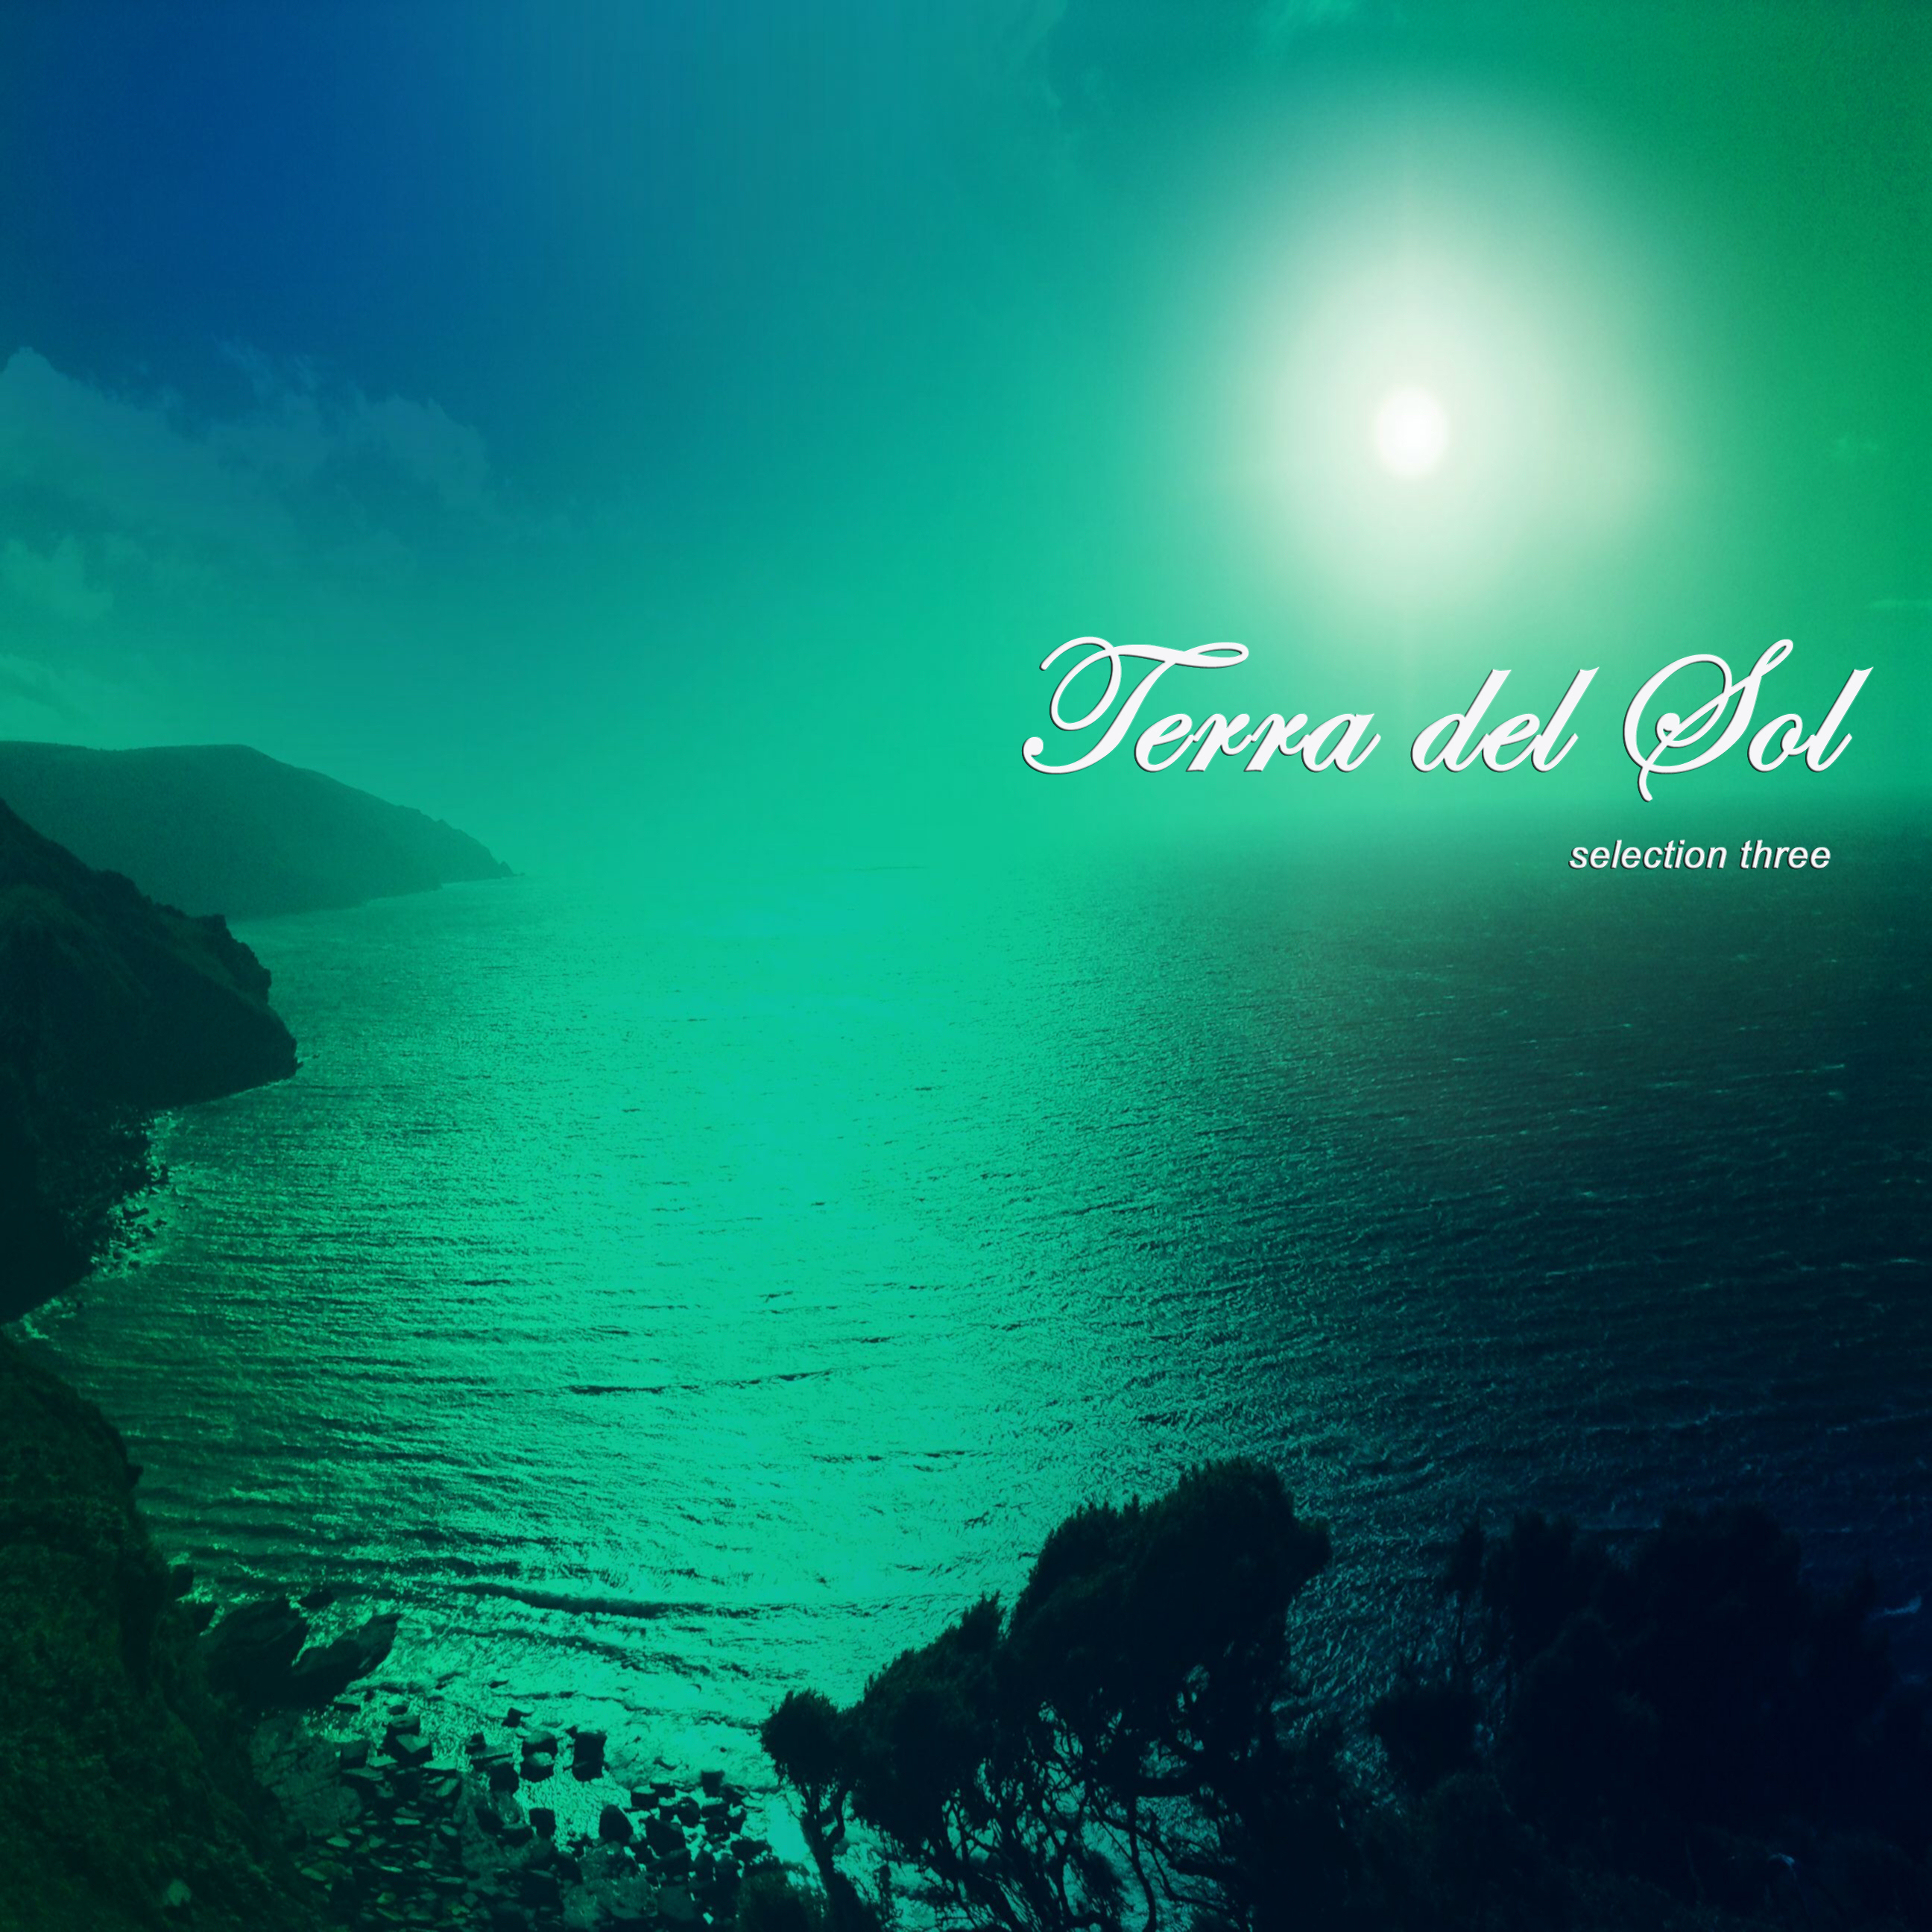 selection three by Terra del Sol